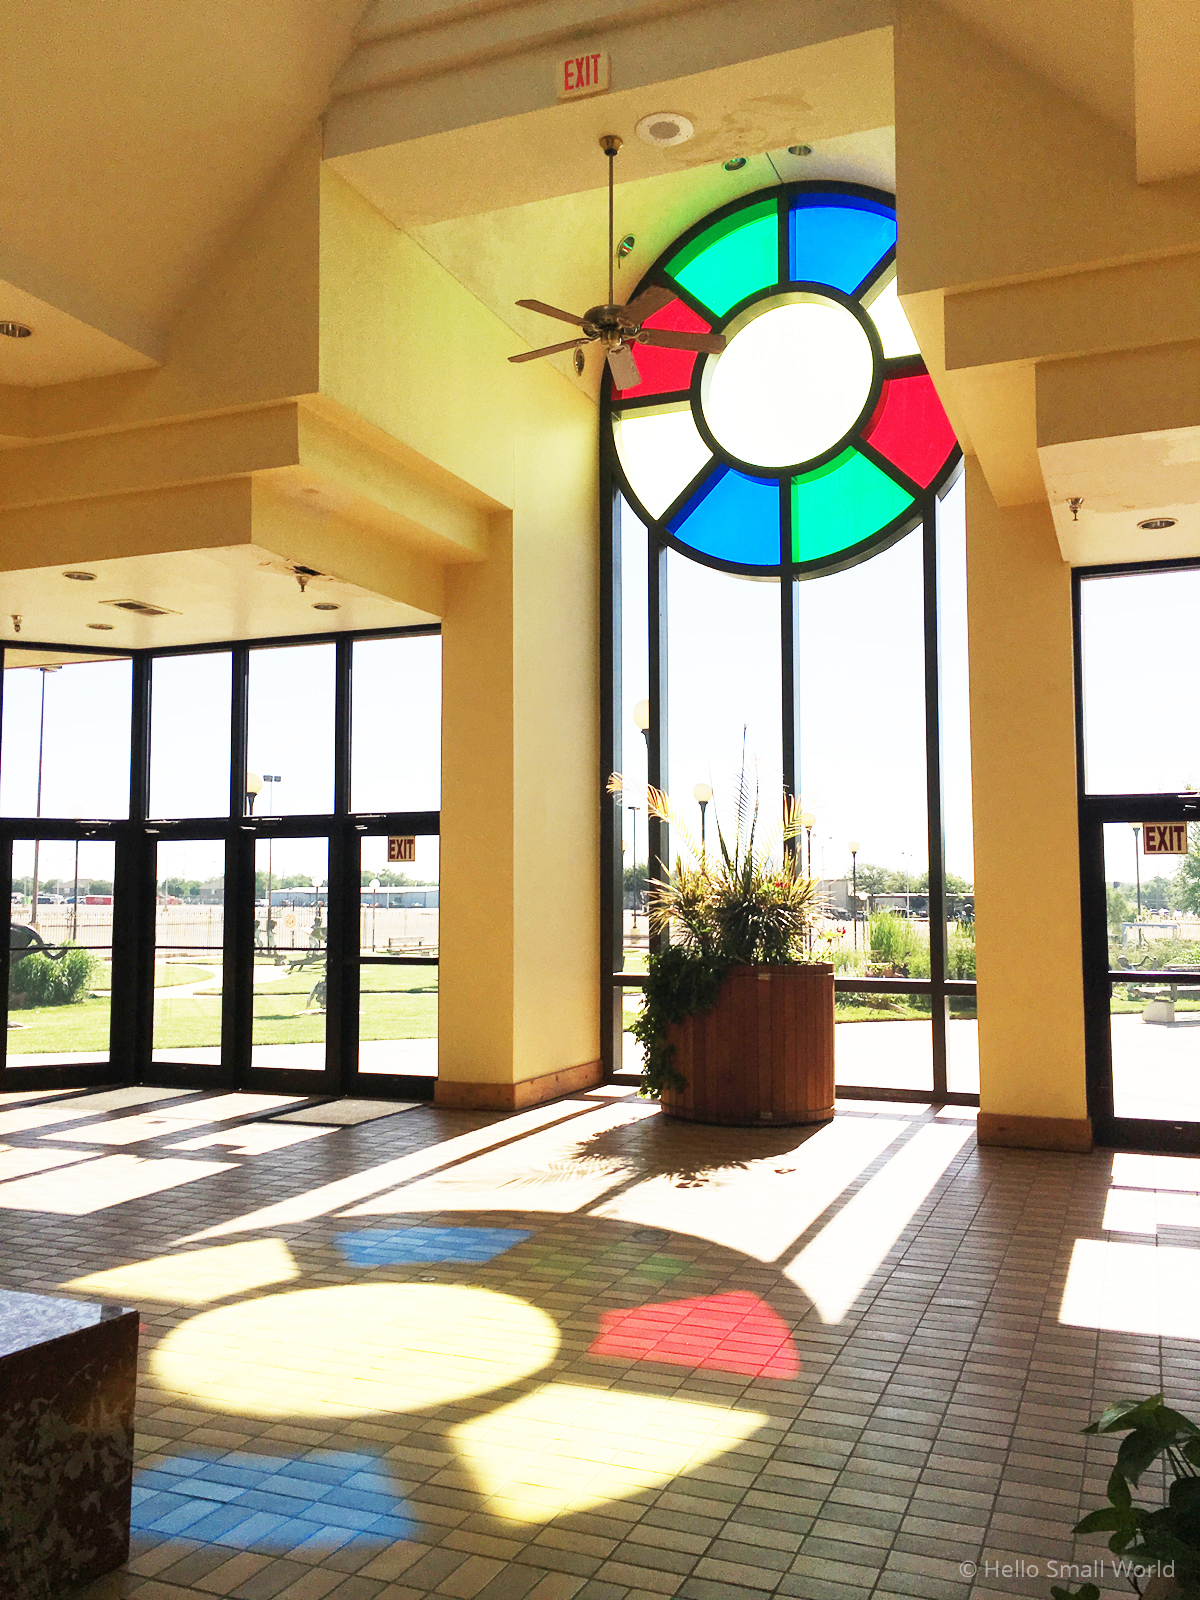 sunset art center in amarillo texas interior view through stainglass window with sun shining in